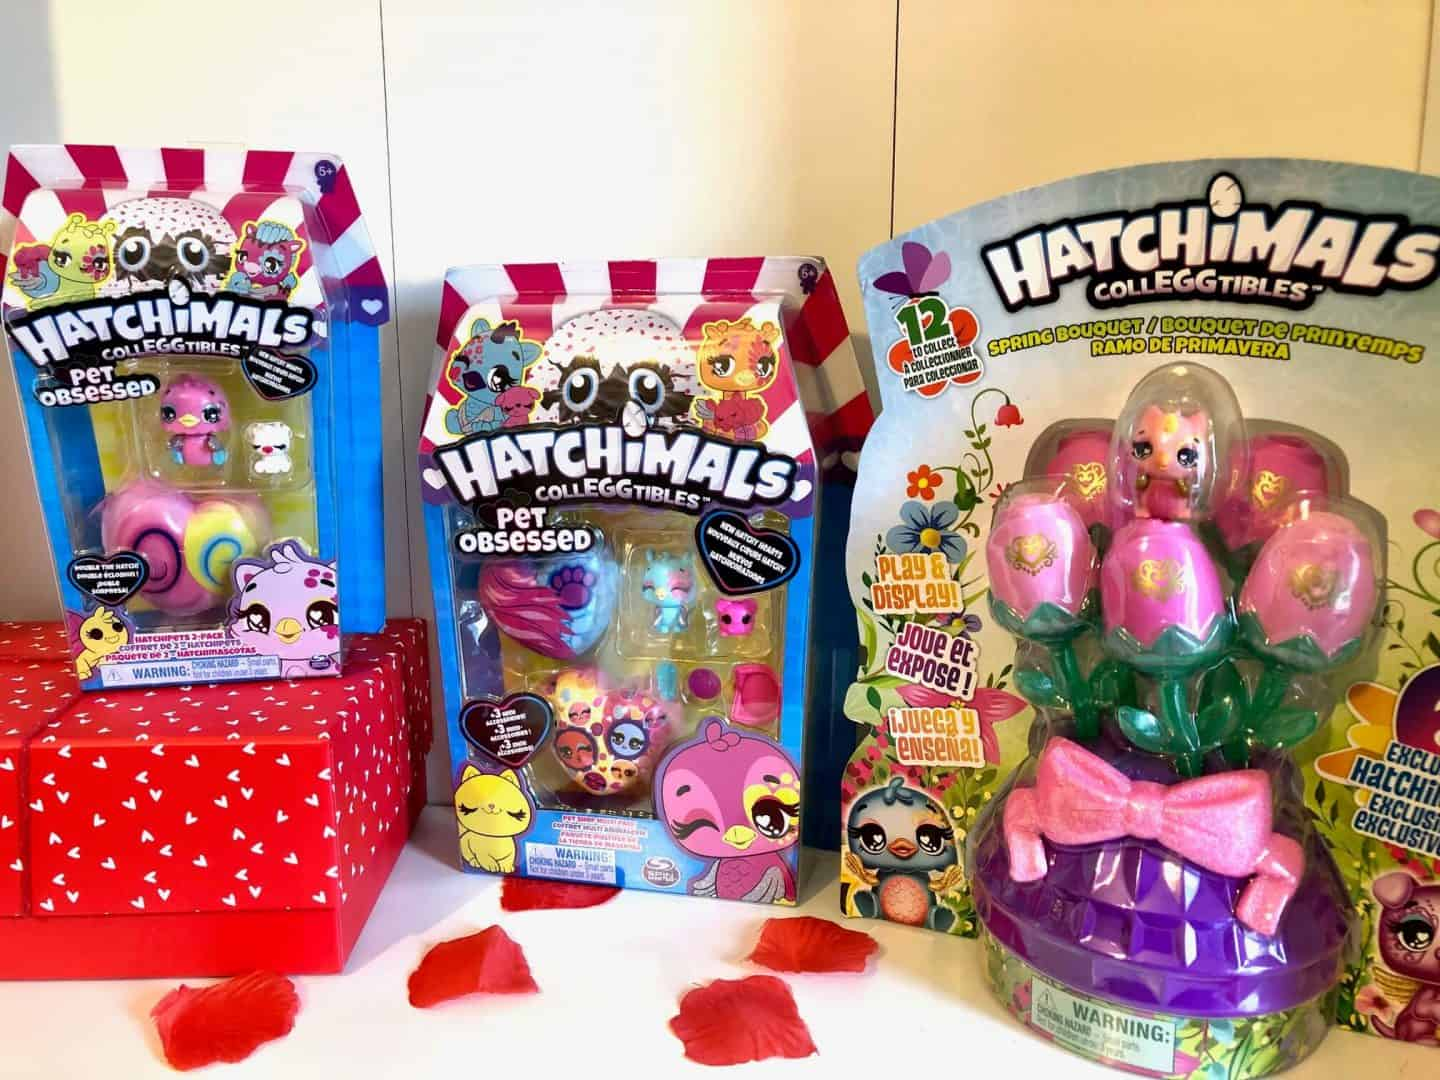 Pet Obsessed HatchiPets and Spring Bouquet Review - Hatchimals CollEGGtibles